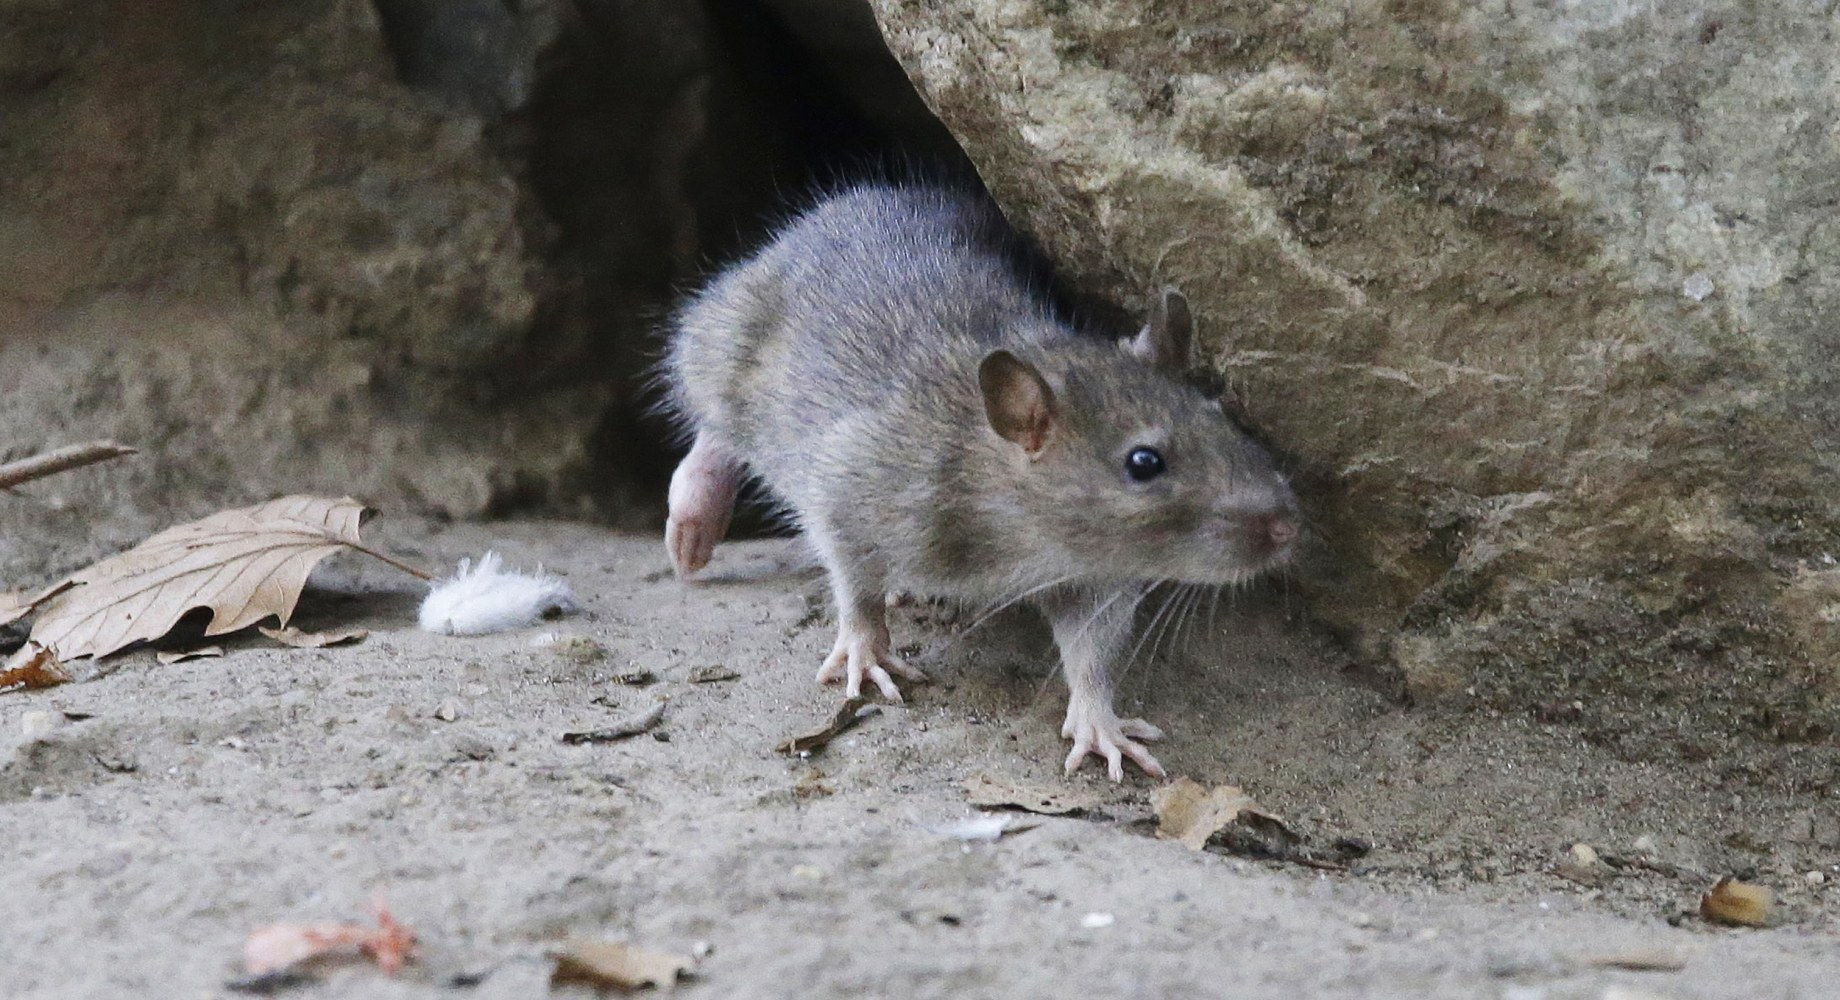 Rats Infect Residents In The Bronx With Leptospirosis